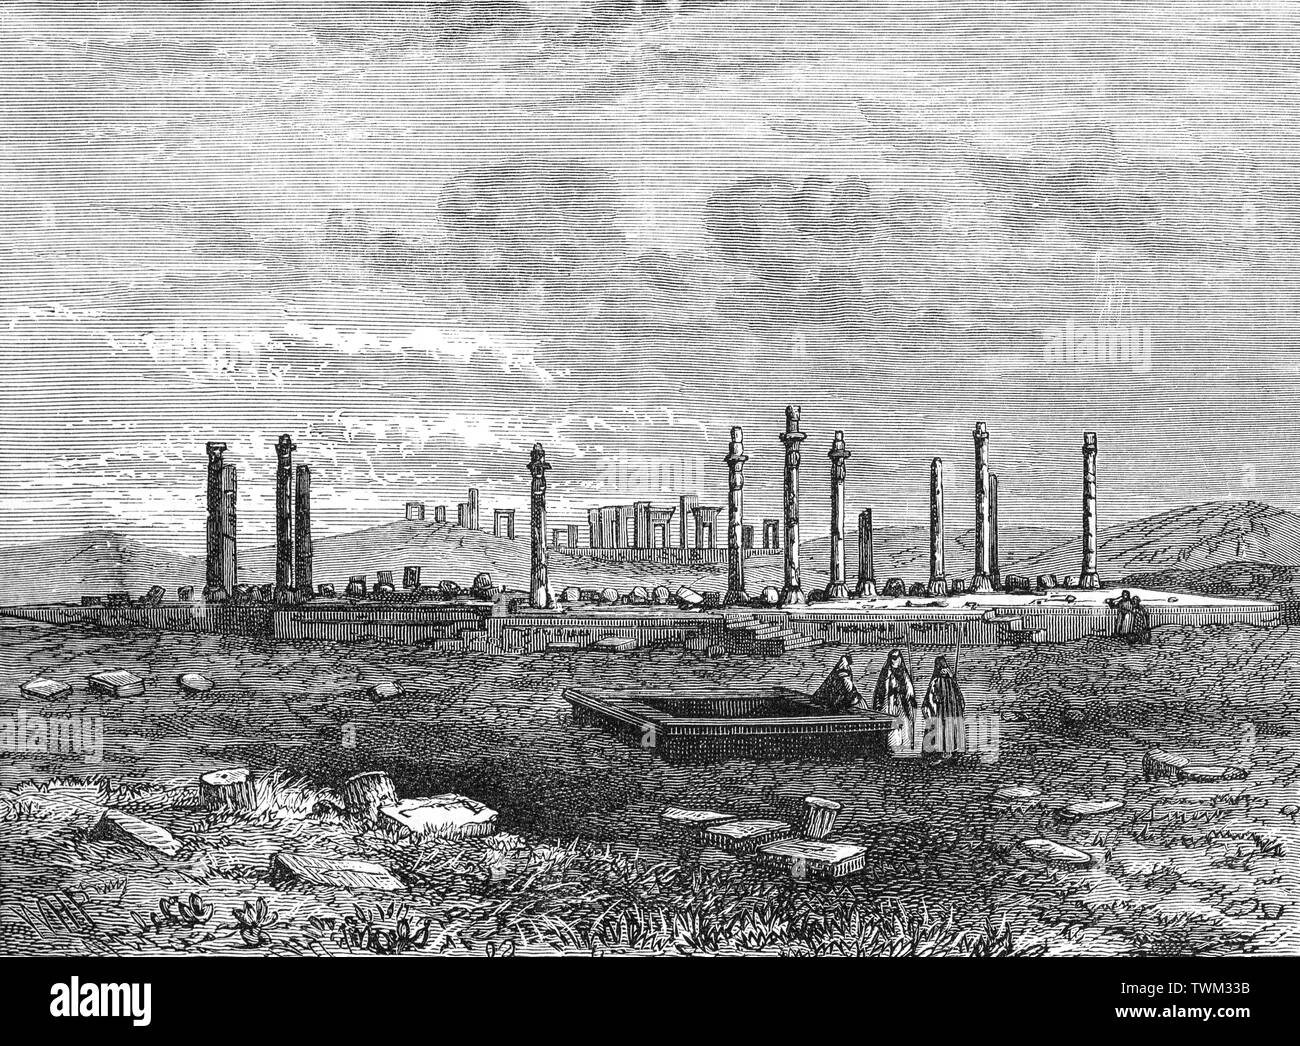 19th Century view of Persepolis  the ceremonial capital of the Achaemenid Empire (ca. 550–330 BCE), situated 60 km northeast of the city of Shiraz in Fars Province, Iran. After invading Achaemenid Persia in 330 BC, Alexander the Great sent the main force of his army to Persepolis and looted the city. It is not clear if the fire which destroyed Persepolis was an accident or a deliberate act of revenge for the burning of the Acropolis of Athens during the second Persian invasion of Greece. So, the destruction of Persepolis could be both an accident and a case of revenge. Stock Photo